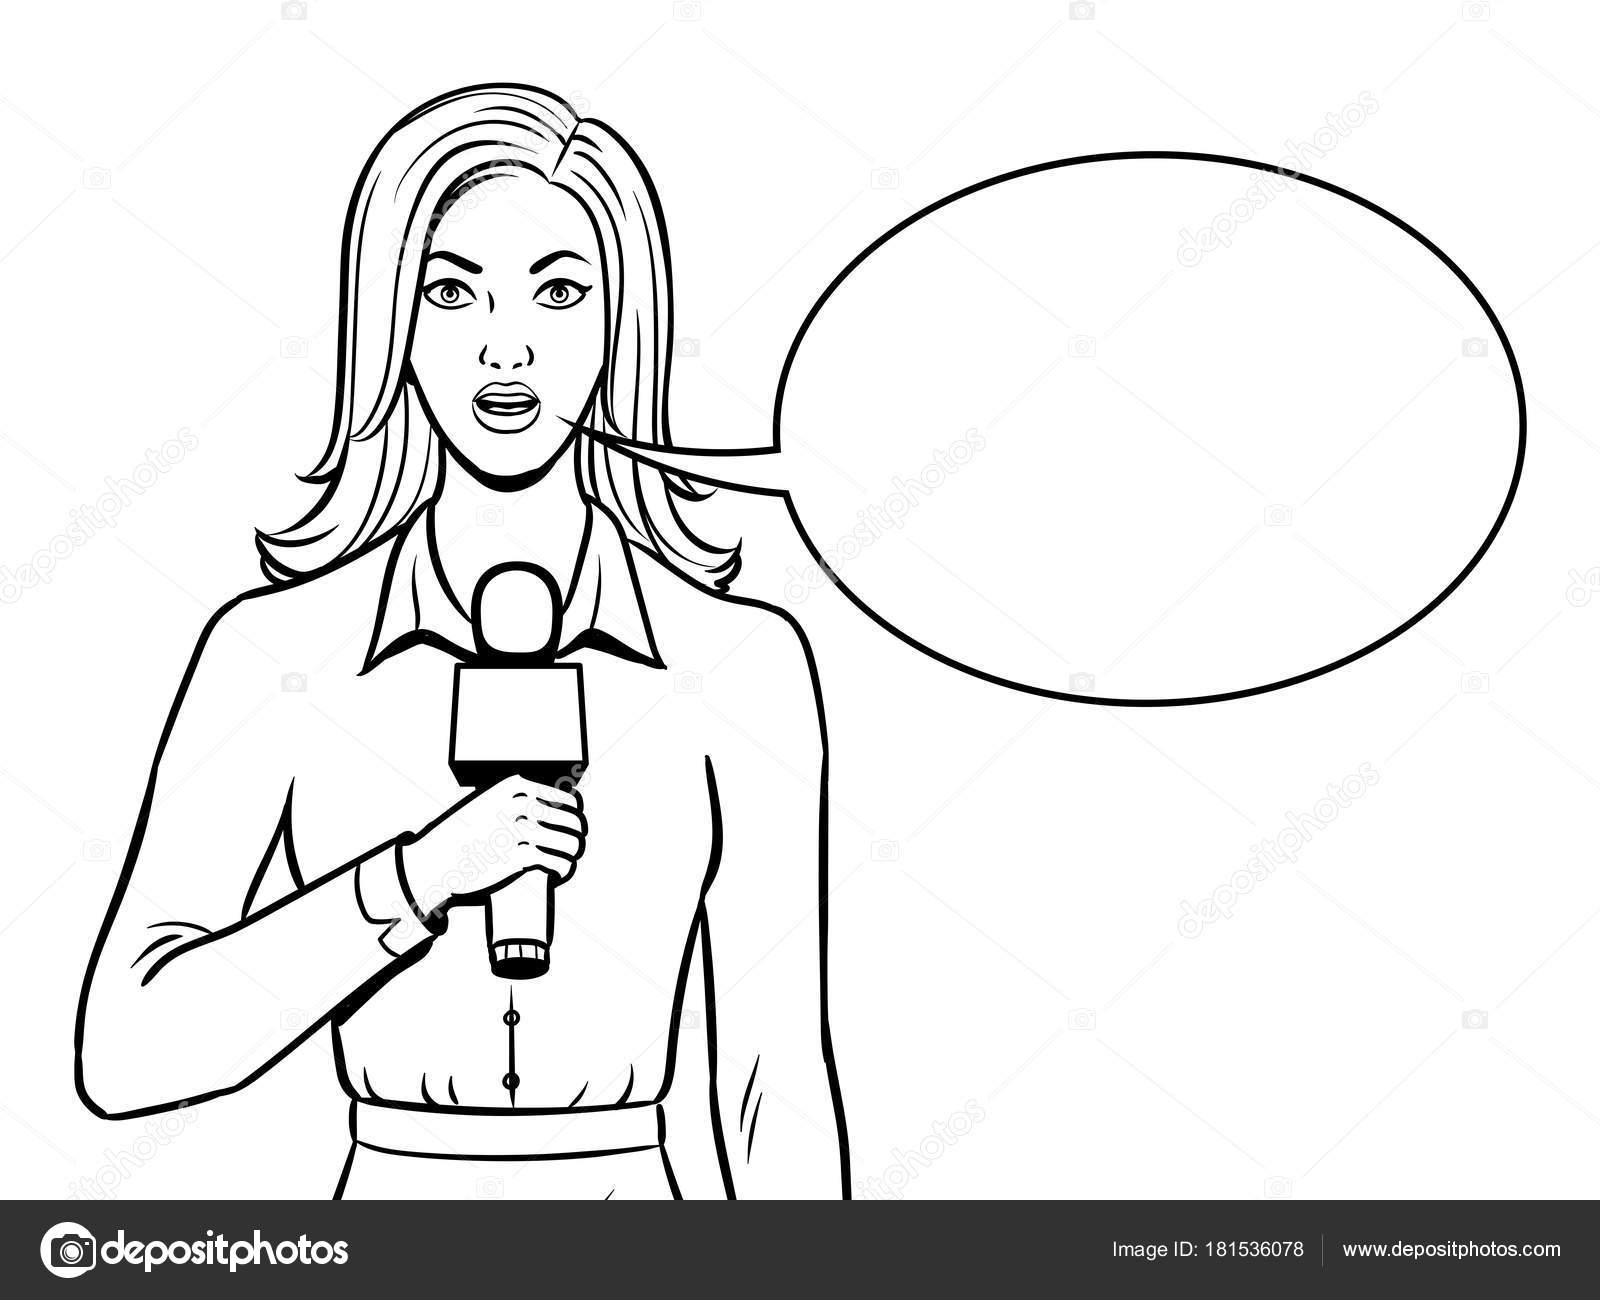 Journalist Coloring Pages Coloring Pages